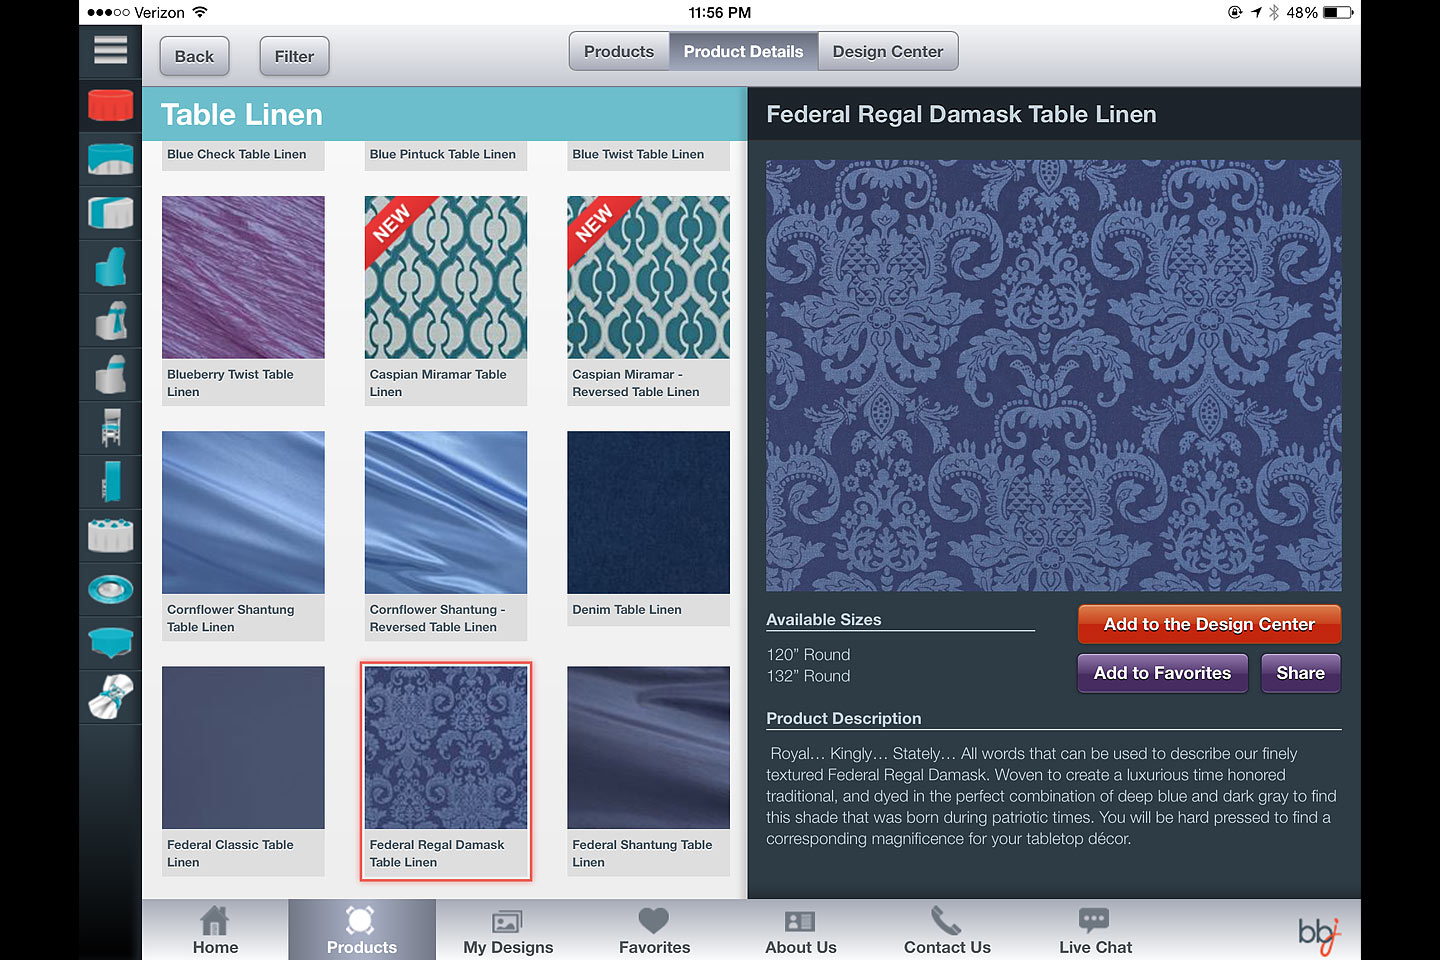 a screen capture of a table linen product details module featured in the bbj linen ios ipad app designed and developed by 4d, inc.